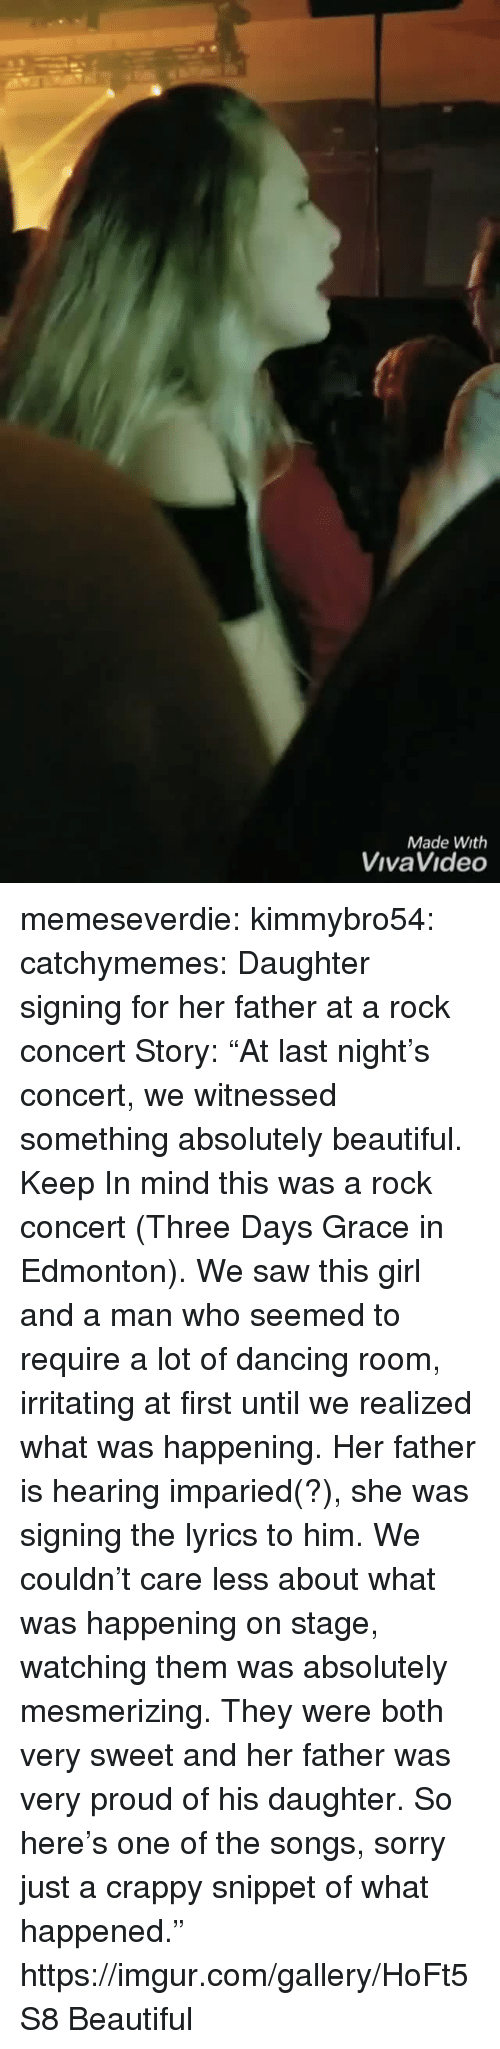 "Beautiful, Dancing, and Saw: Made With  VivaVideo memeseverdie: kimmybro54:  catchymemes:  Daughter signing for her father at a rock concert   Story: ""At last night's concert, we witnessed something absolutely beautiful. Keep In mind this was a rock concert (Three Days Grace in Edmonton). We saw this girl and a man who seemed to require a lot of dancing room, irritating at first until we realized what was happening. Her father is hearing imparied(?), she was signing the lyrics to him. We couldn't care less about what was happening on stage, watching them was absolutely mesmerizing. They were both very sweet and her father was very proud of his daughter. So here's one of the songs, sorry just a crappy snippet of what happened.""  https://imgur.com/gallery/HoFt5S8   Beautiful"